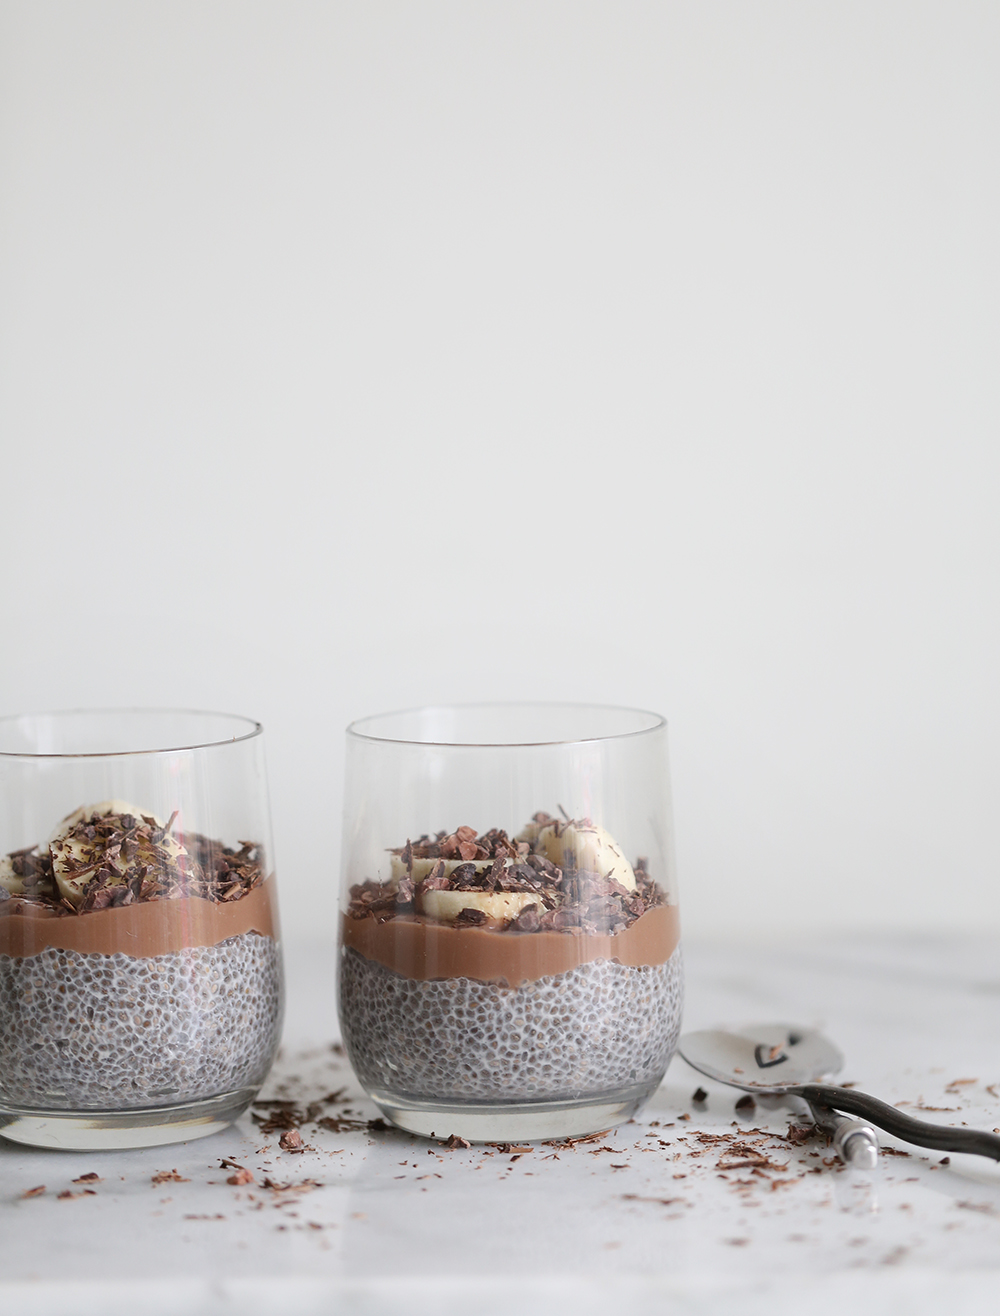 IMG_1634 coconut chia pudding